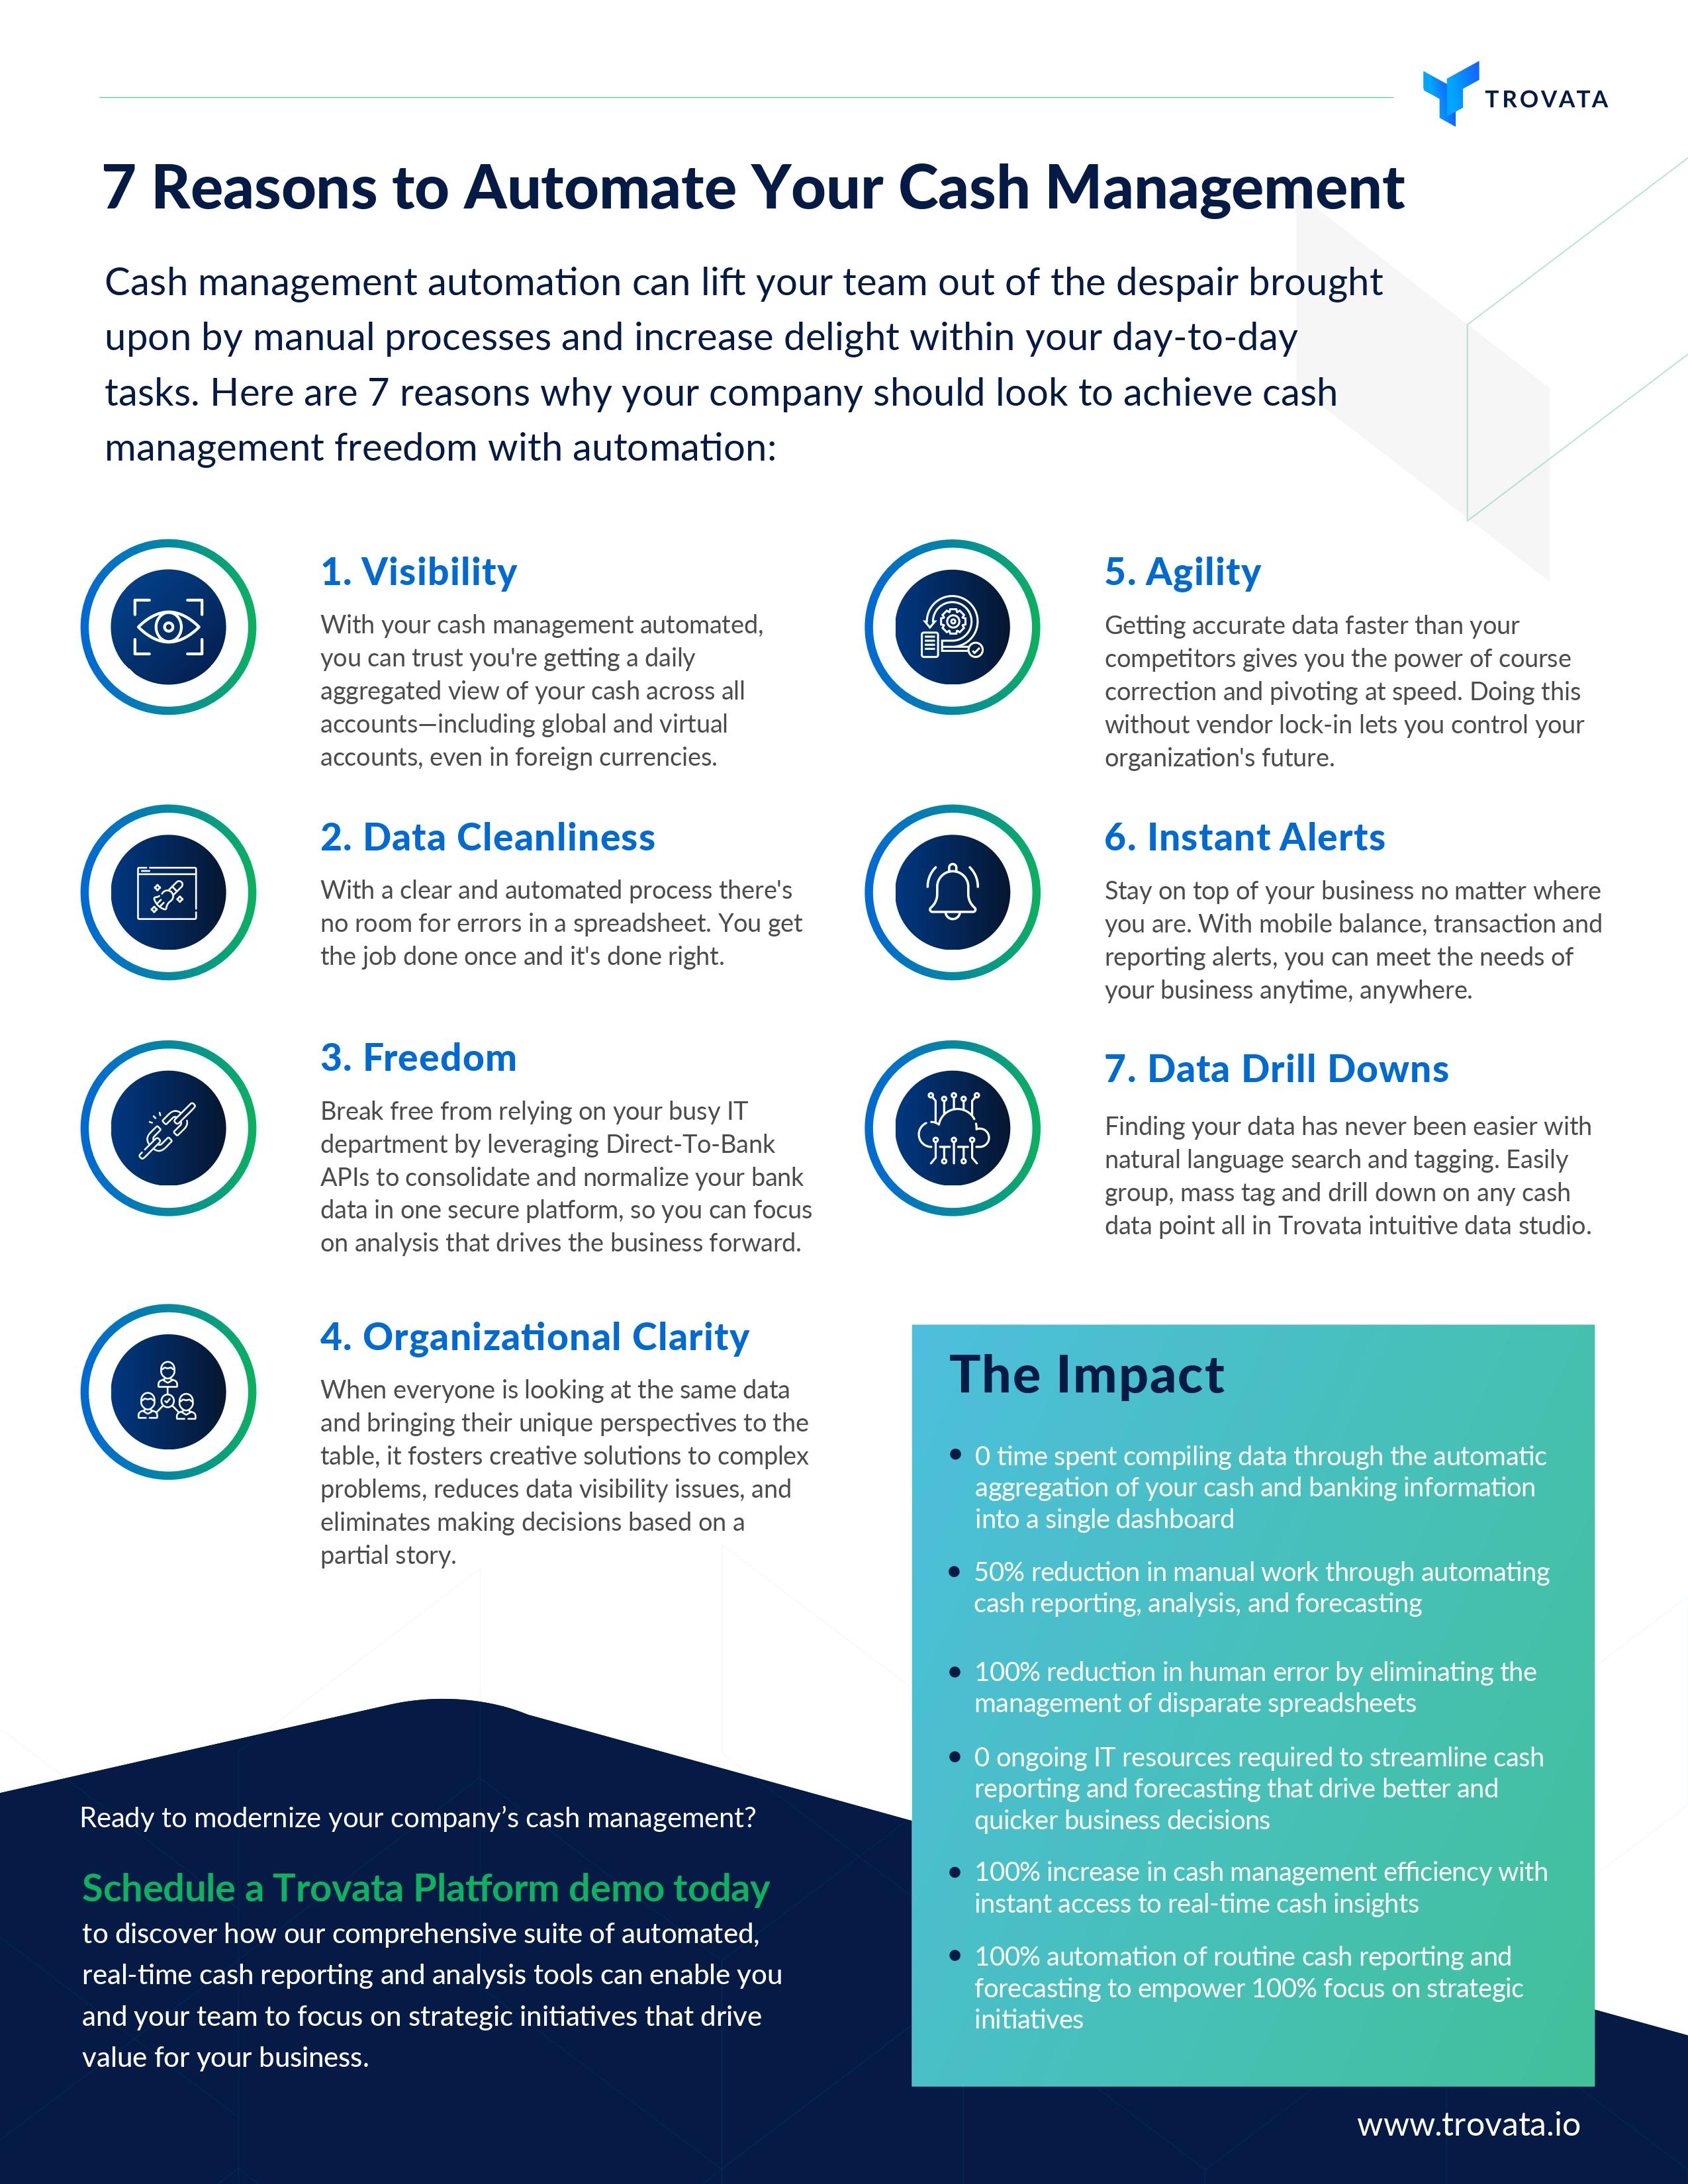 Reasons to Automate Cash Management